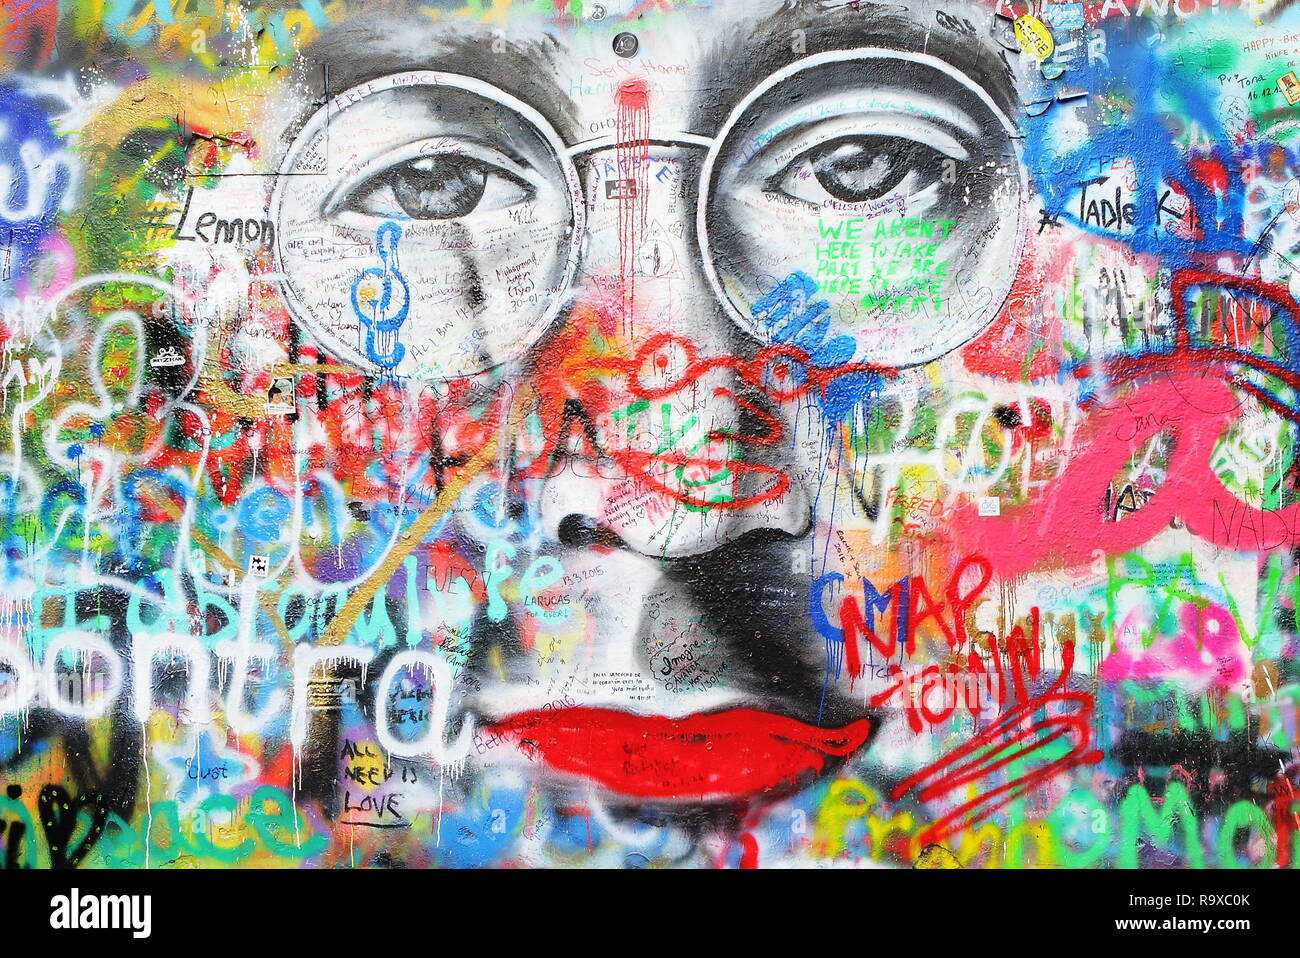 PRAGUE, CZECH REPUBLIC - JANUARY 04: The Lennon Wall since the 1980s is filled with John Lennon-inspired graffiti and pieces of lyrics from Beatles so - Stock Image